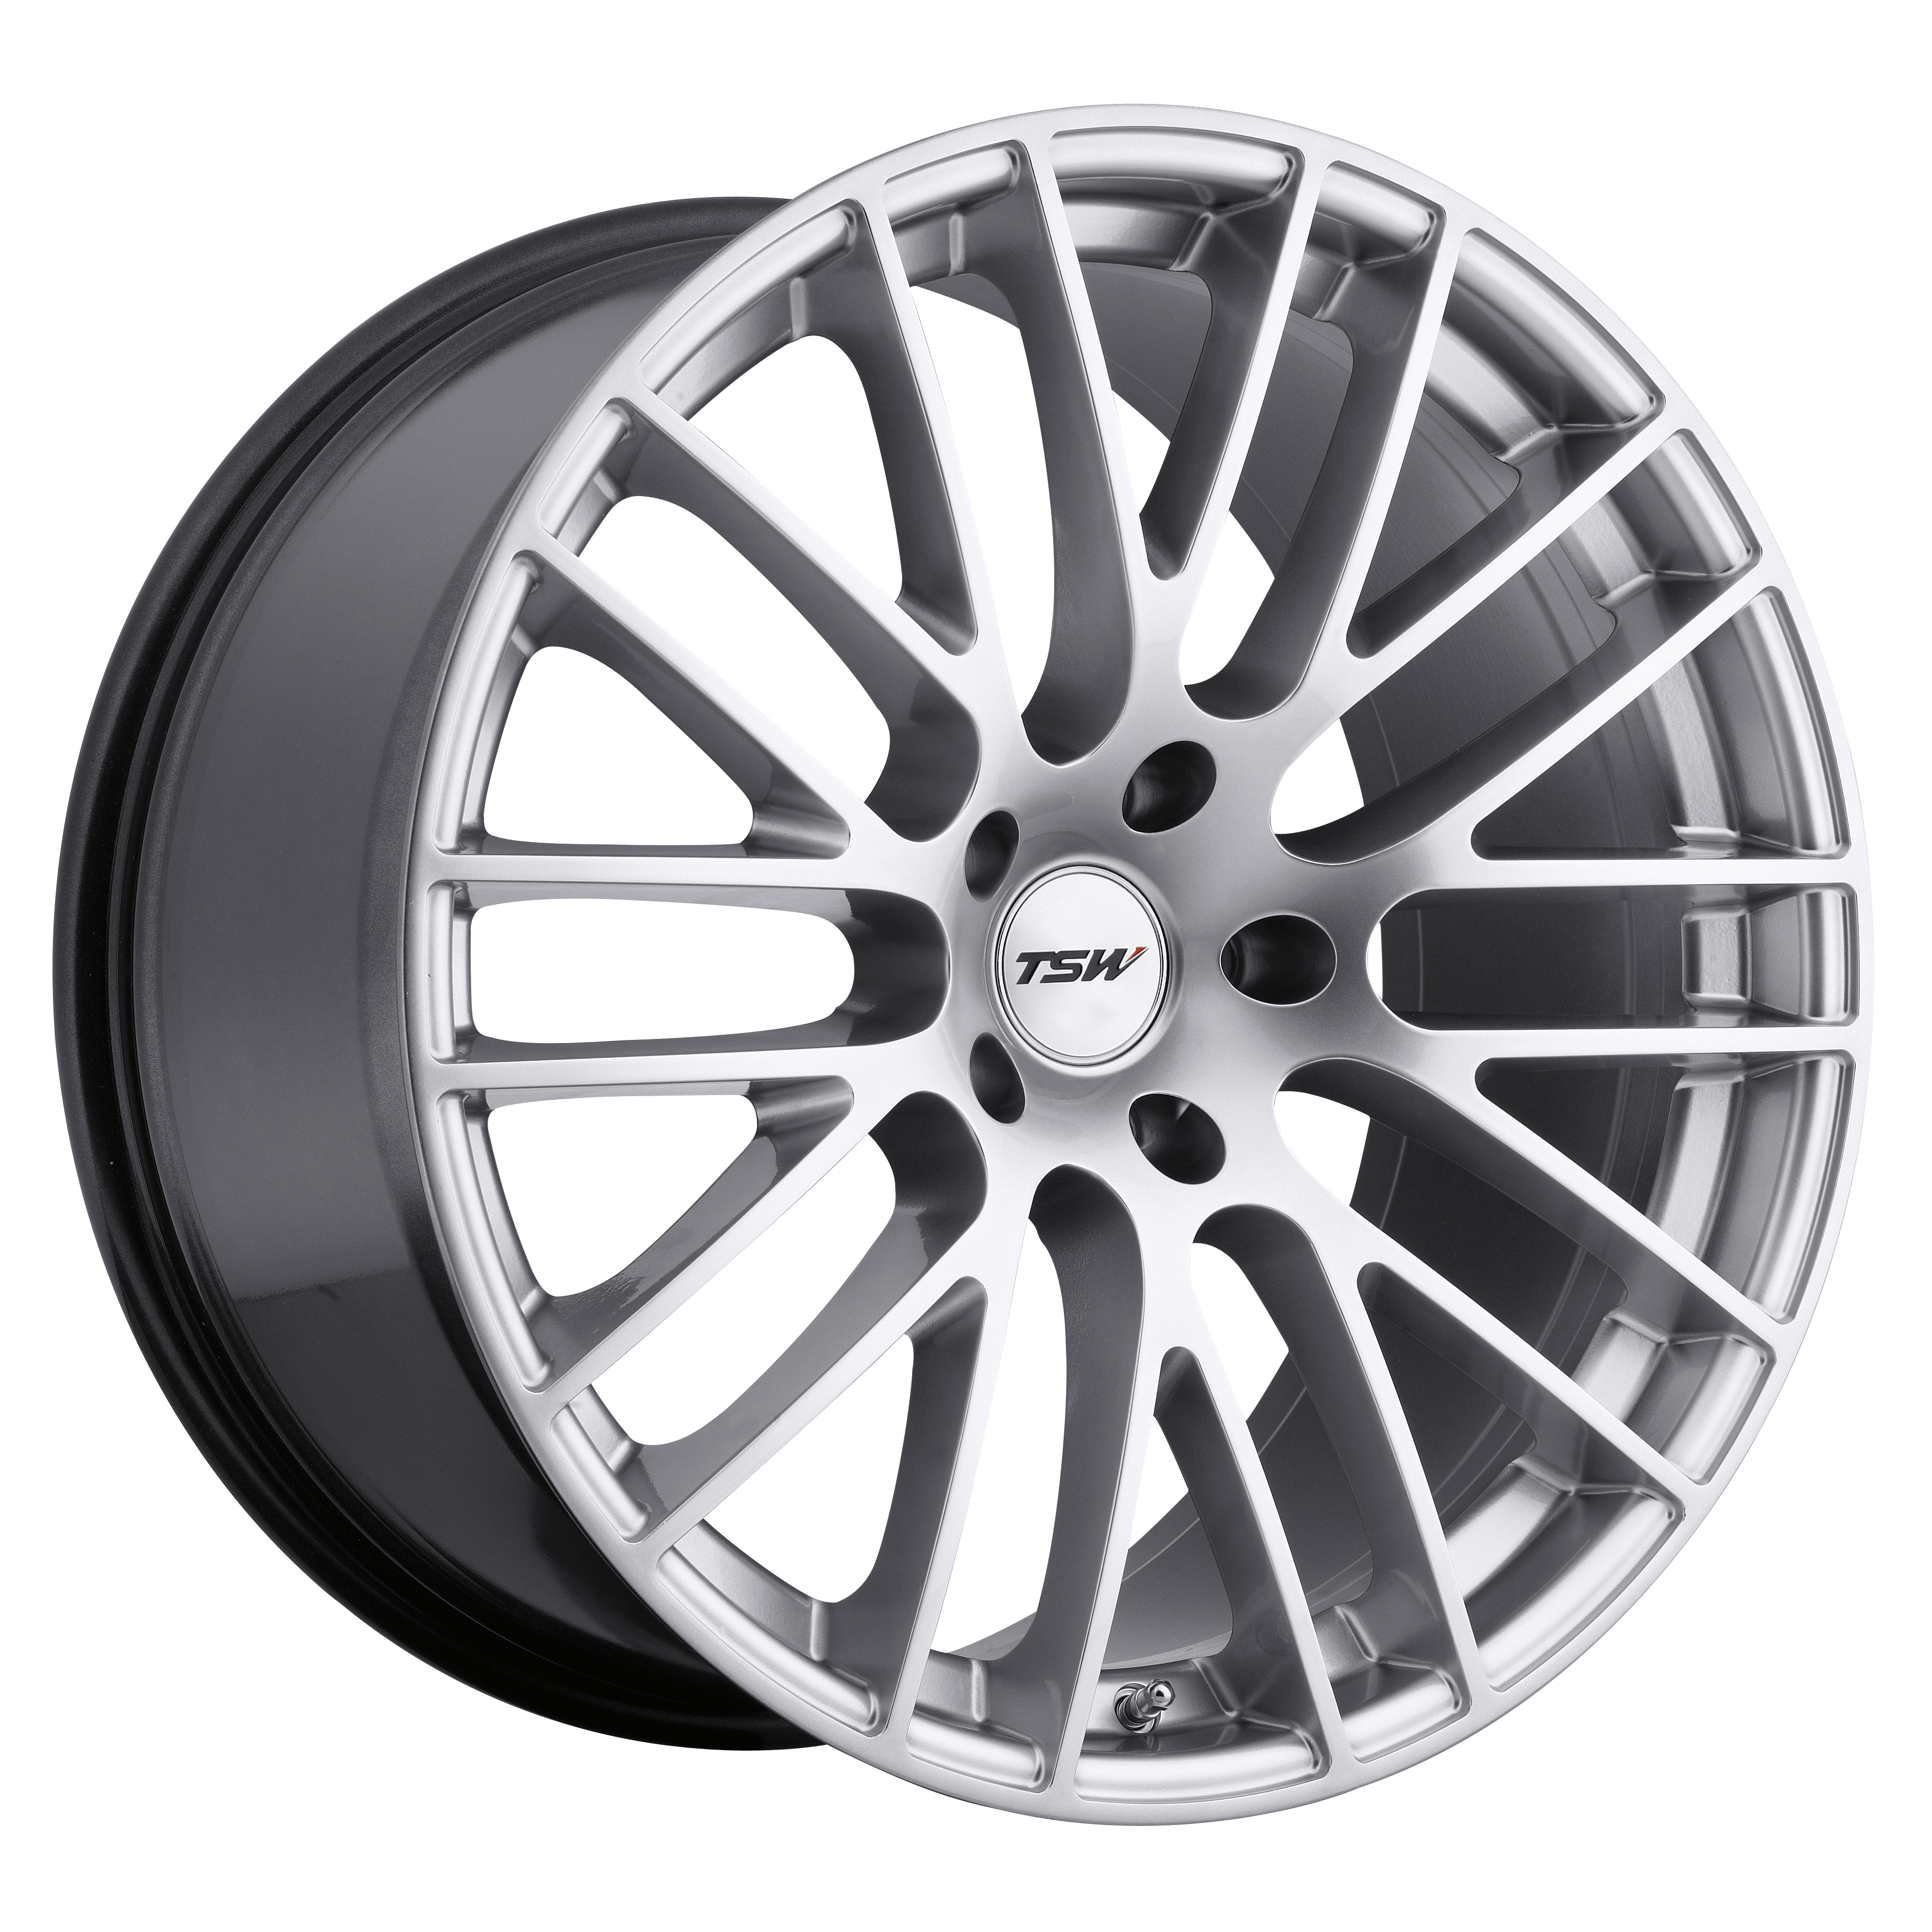 Max Alloy Wheels by TSW